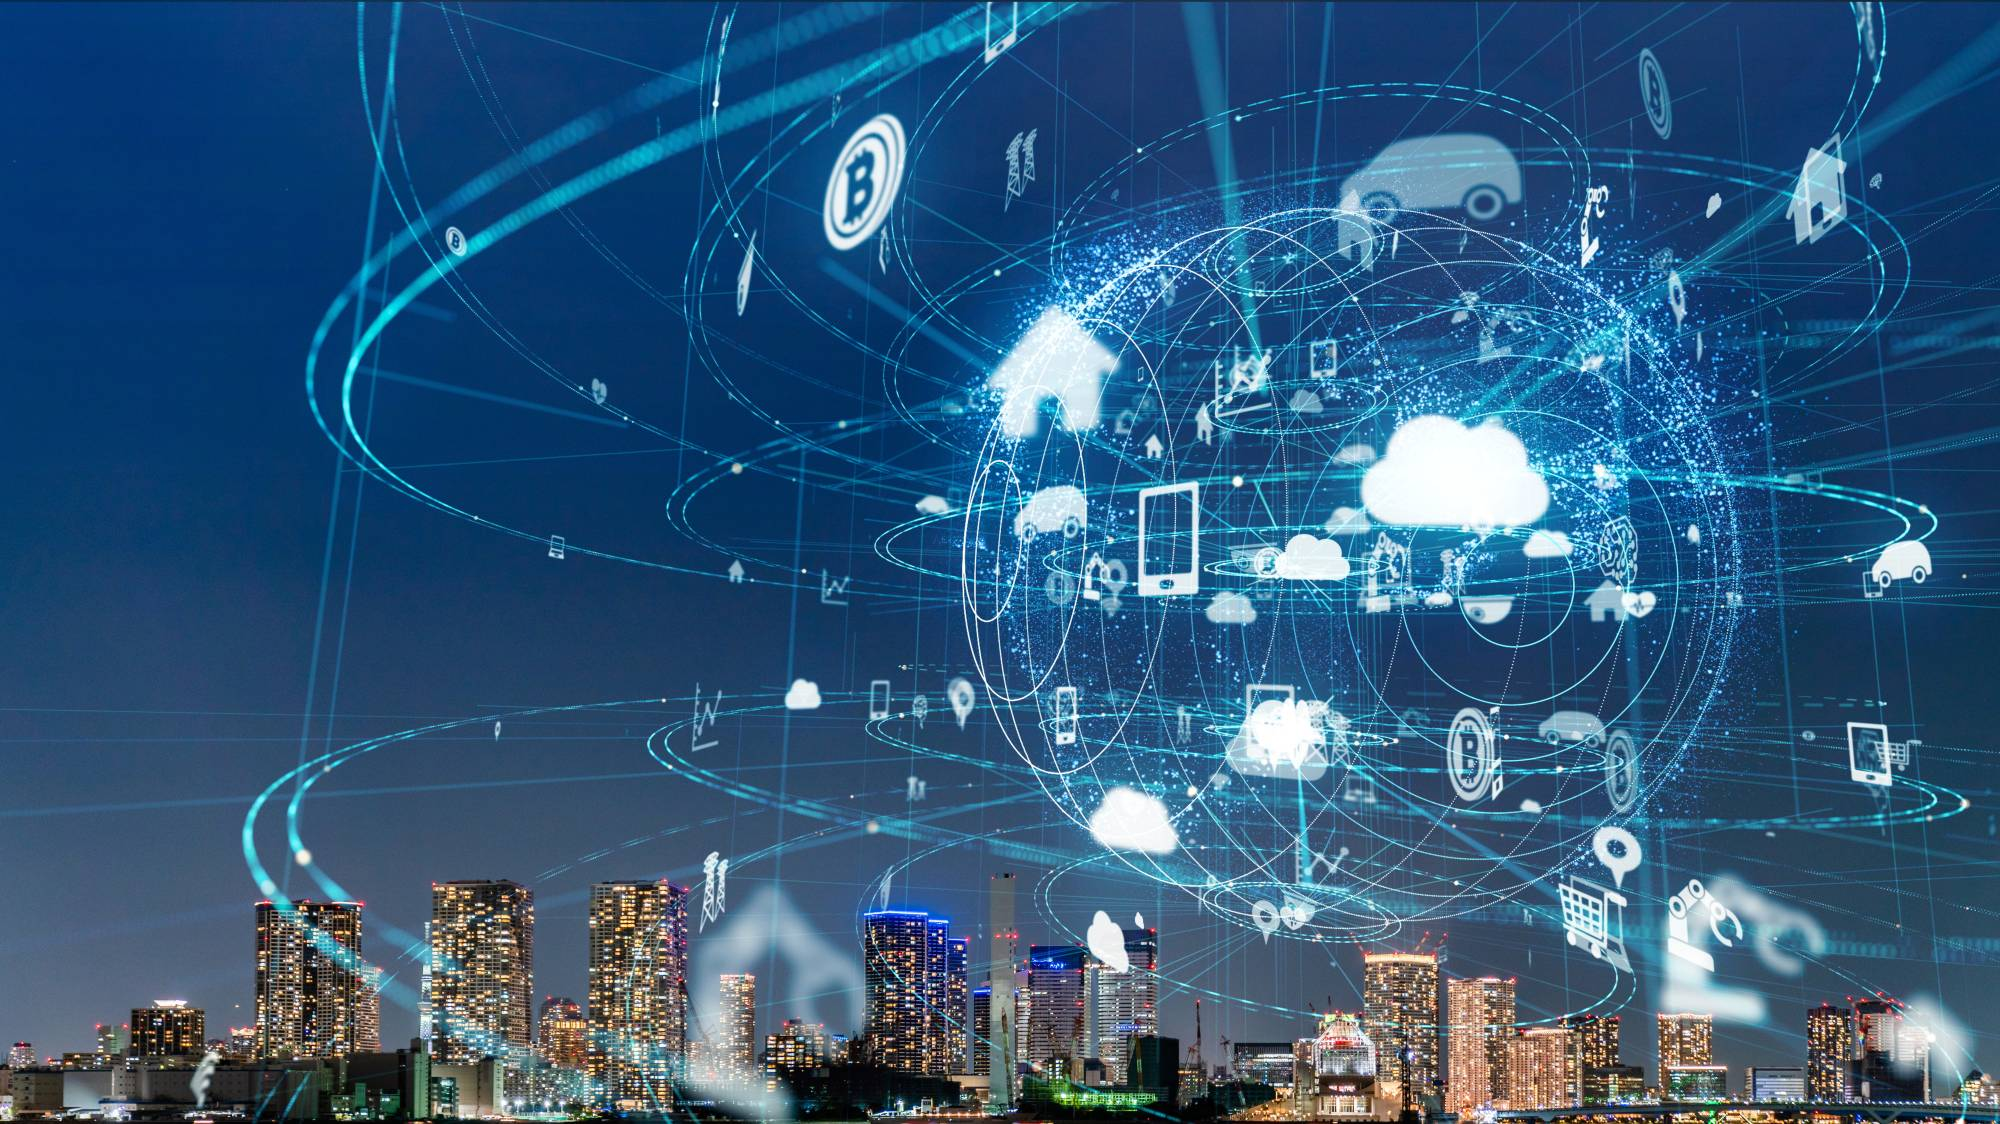 Supporters tout super cities as high-tech marvels where artificial intelligence and big data provide fast, efficient and cost-effective solutions to social problems. Opponents warn that data leaks could lead to privacy violations and a surveillance state. | GETTY IMAGES